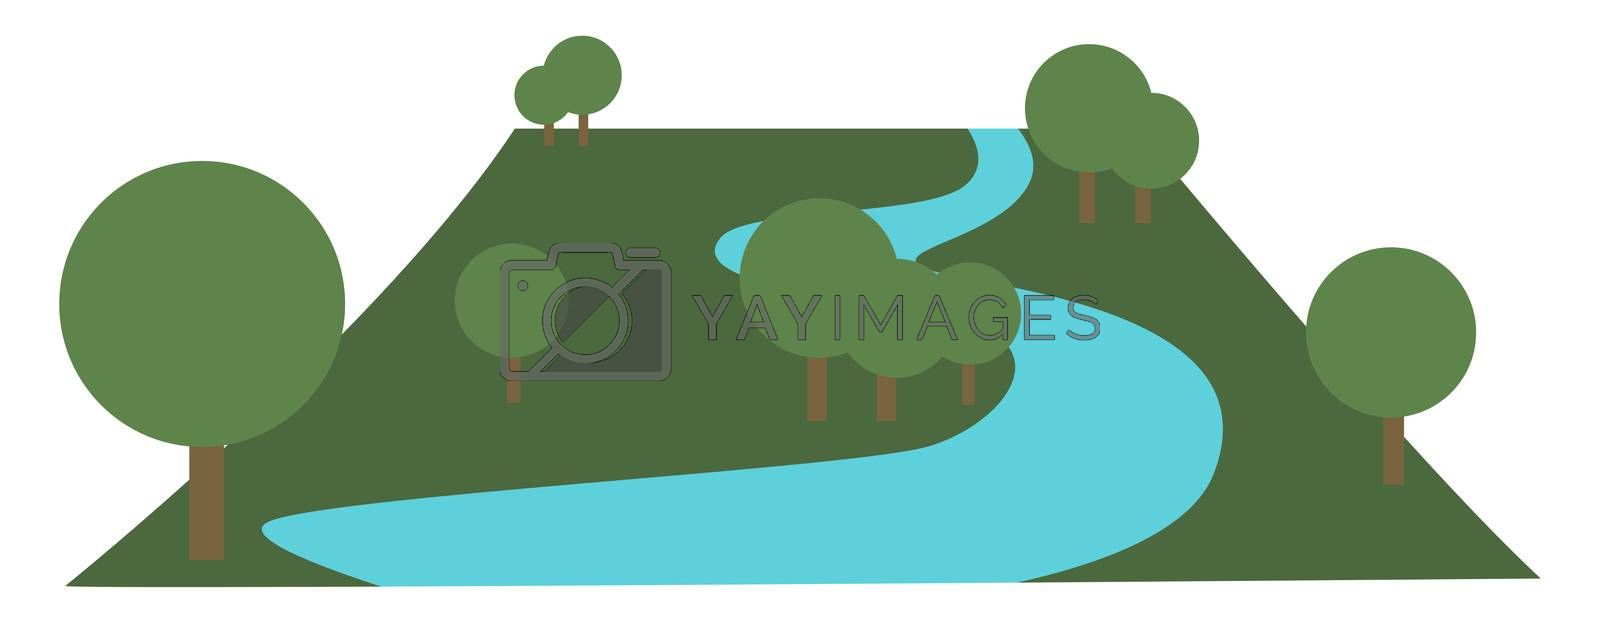 Park in city, illustration, vector on white background